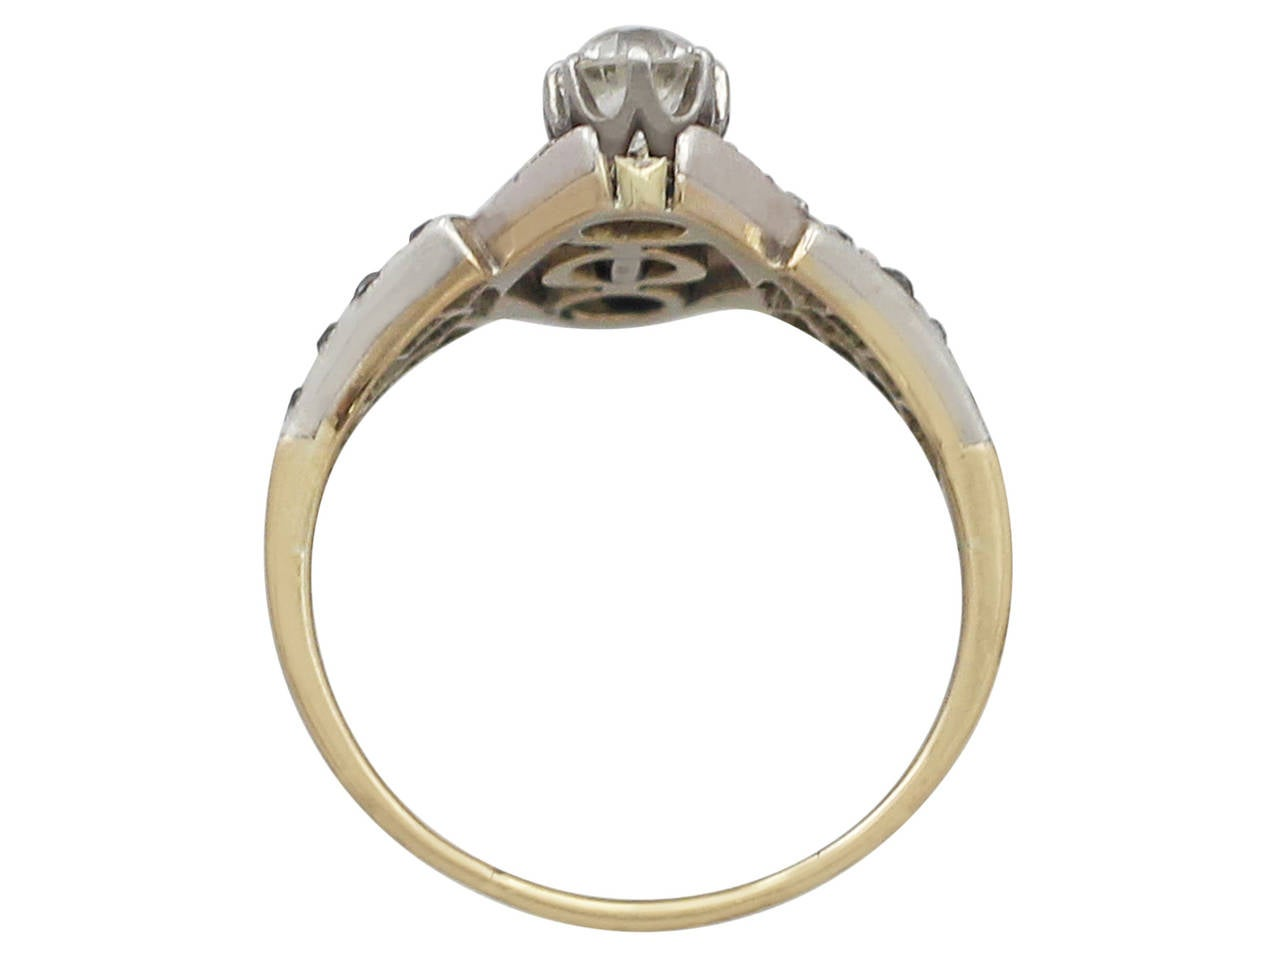 1900s Antique 1.15 Carat Diamond and Pearl Yellow Gold Cocktail Ring For Sale 1